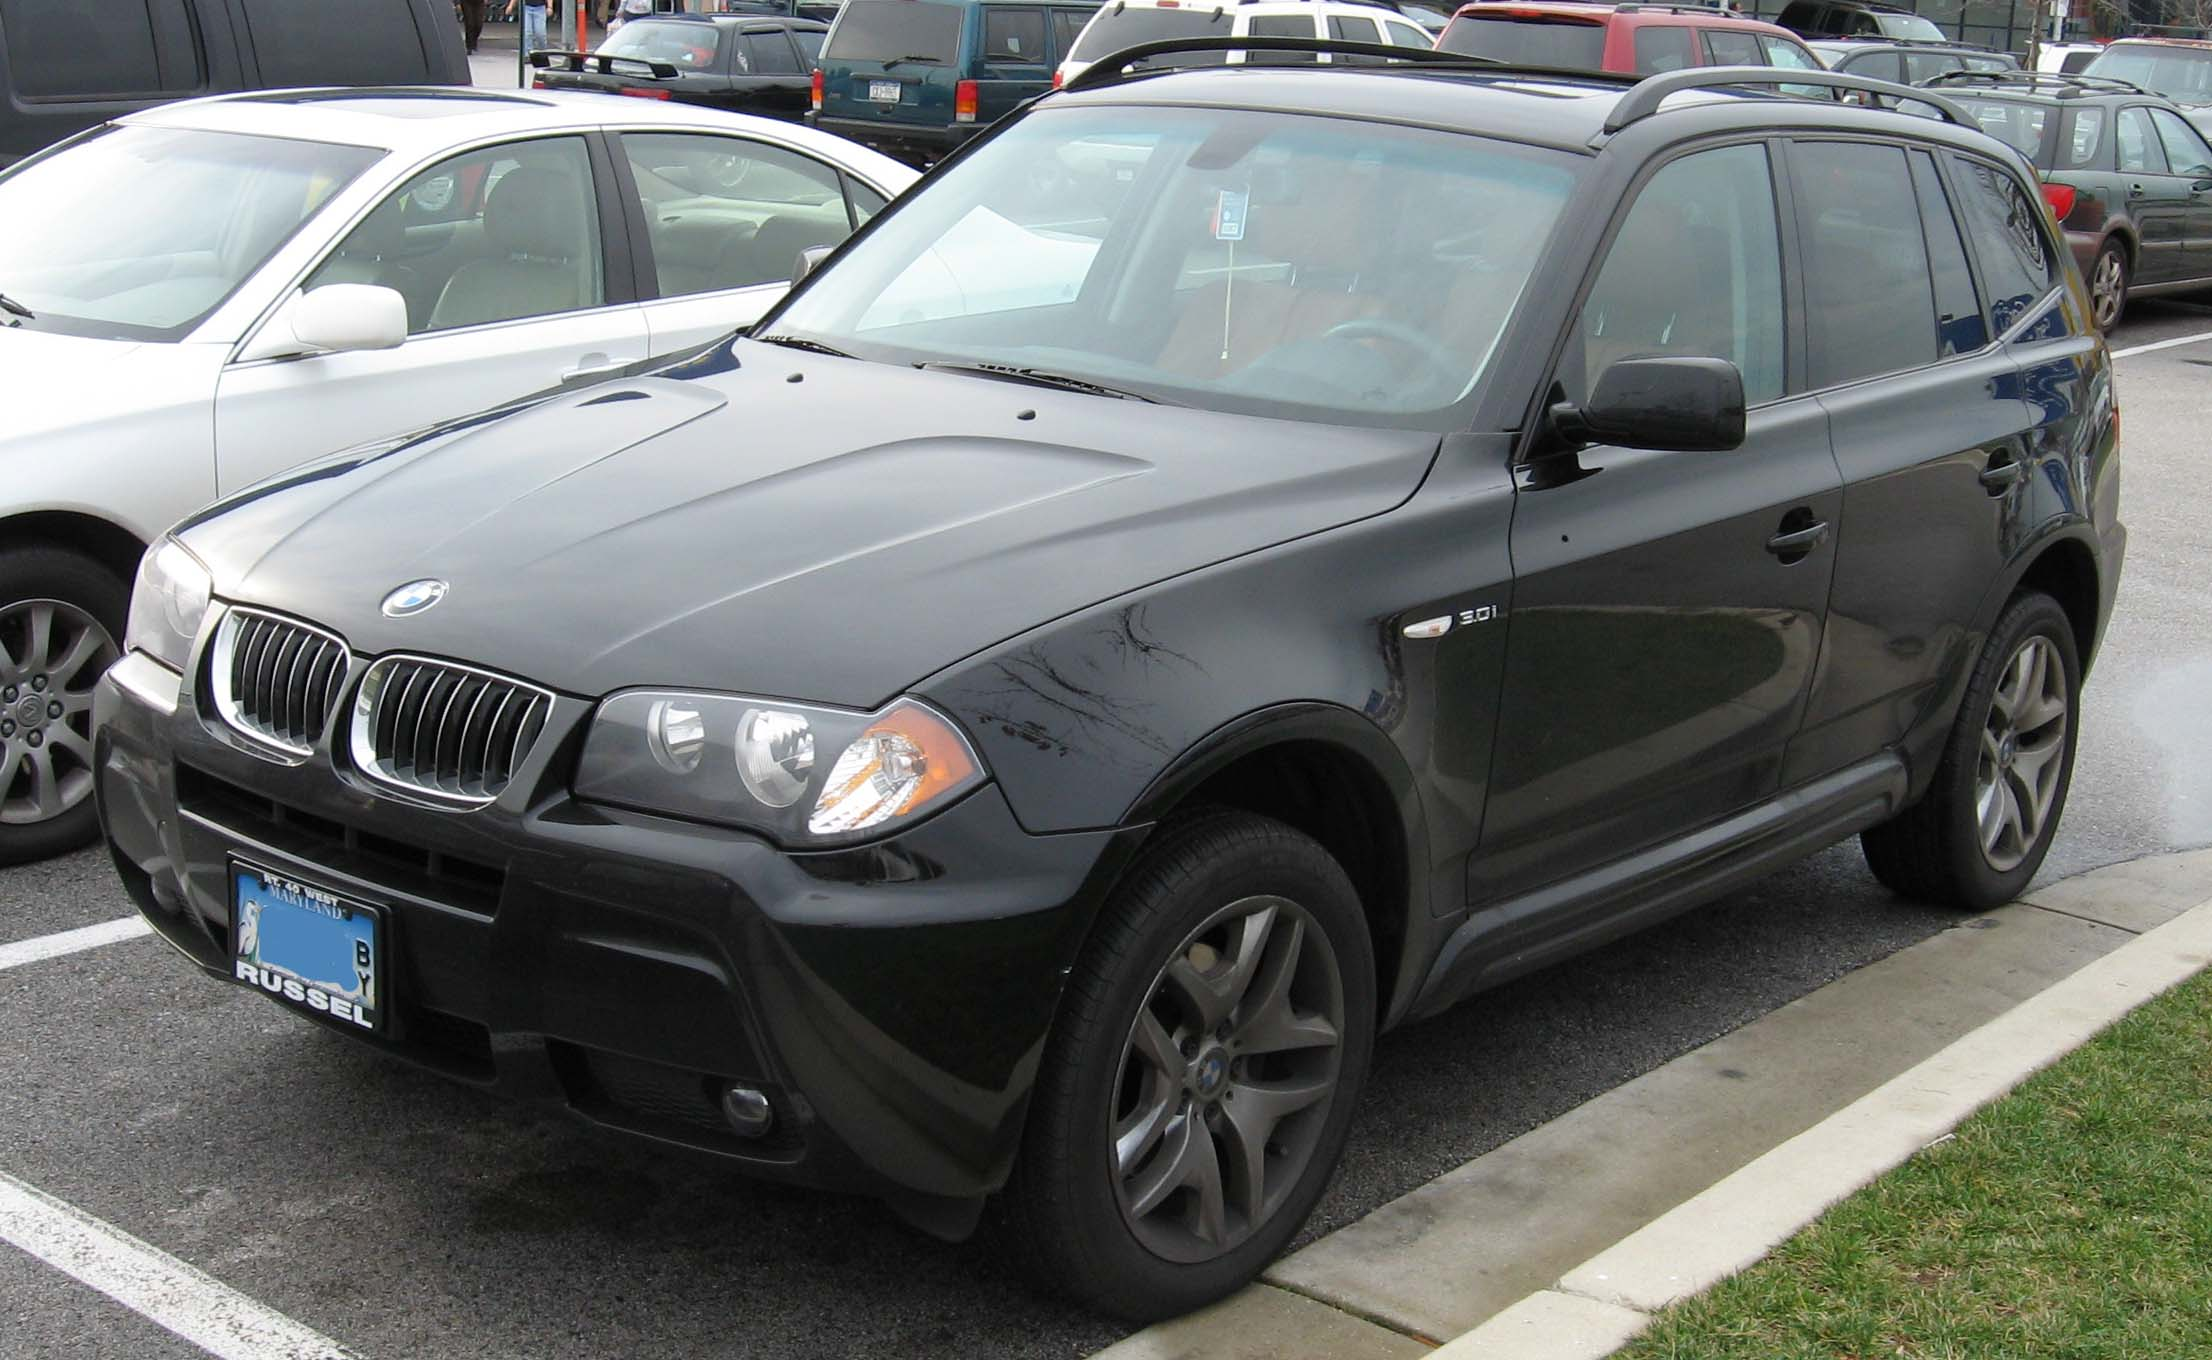 file bmw x3 wikimedia commons. Black Bedroom Furniture Sets. Home Design Ideas